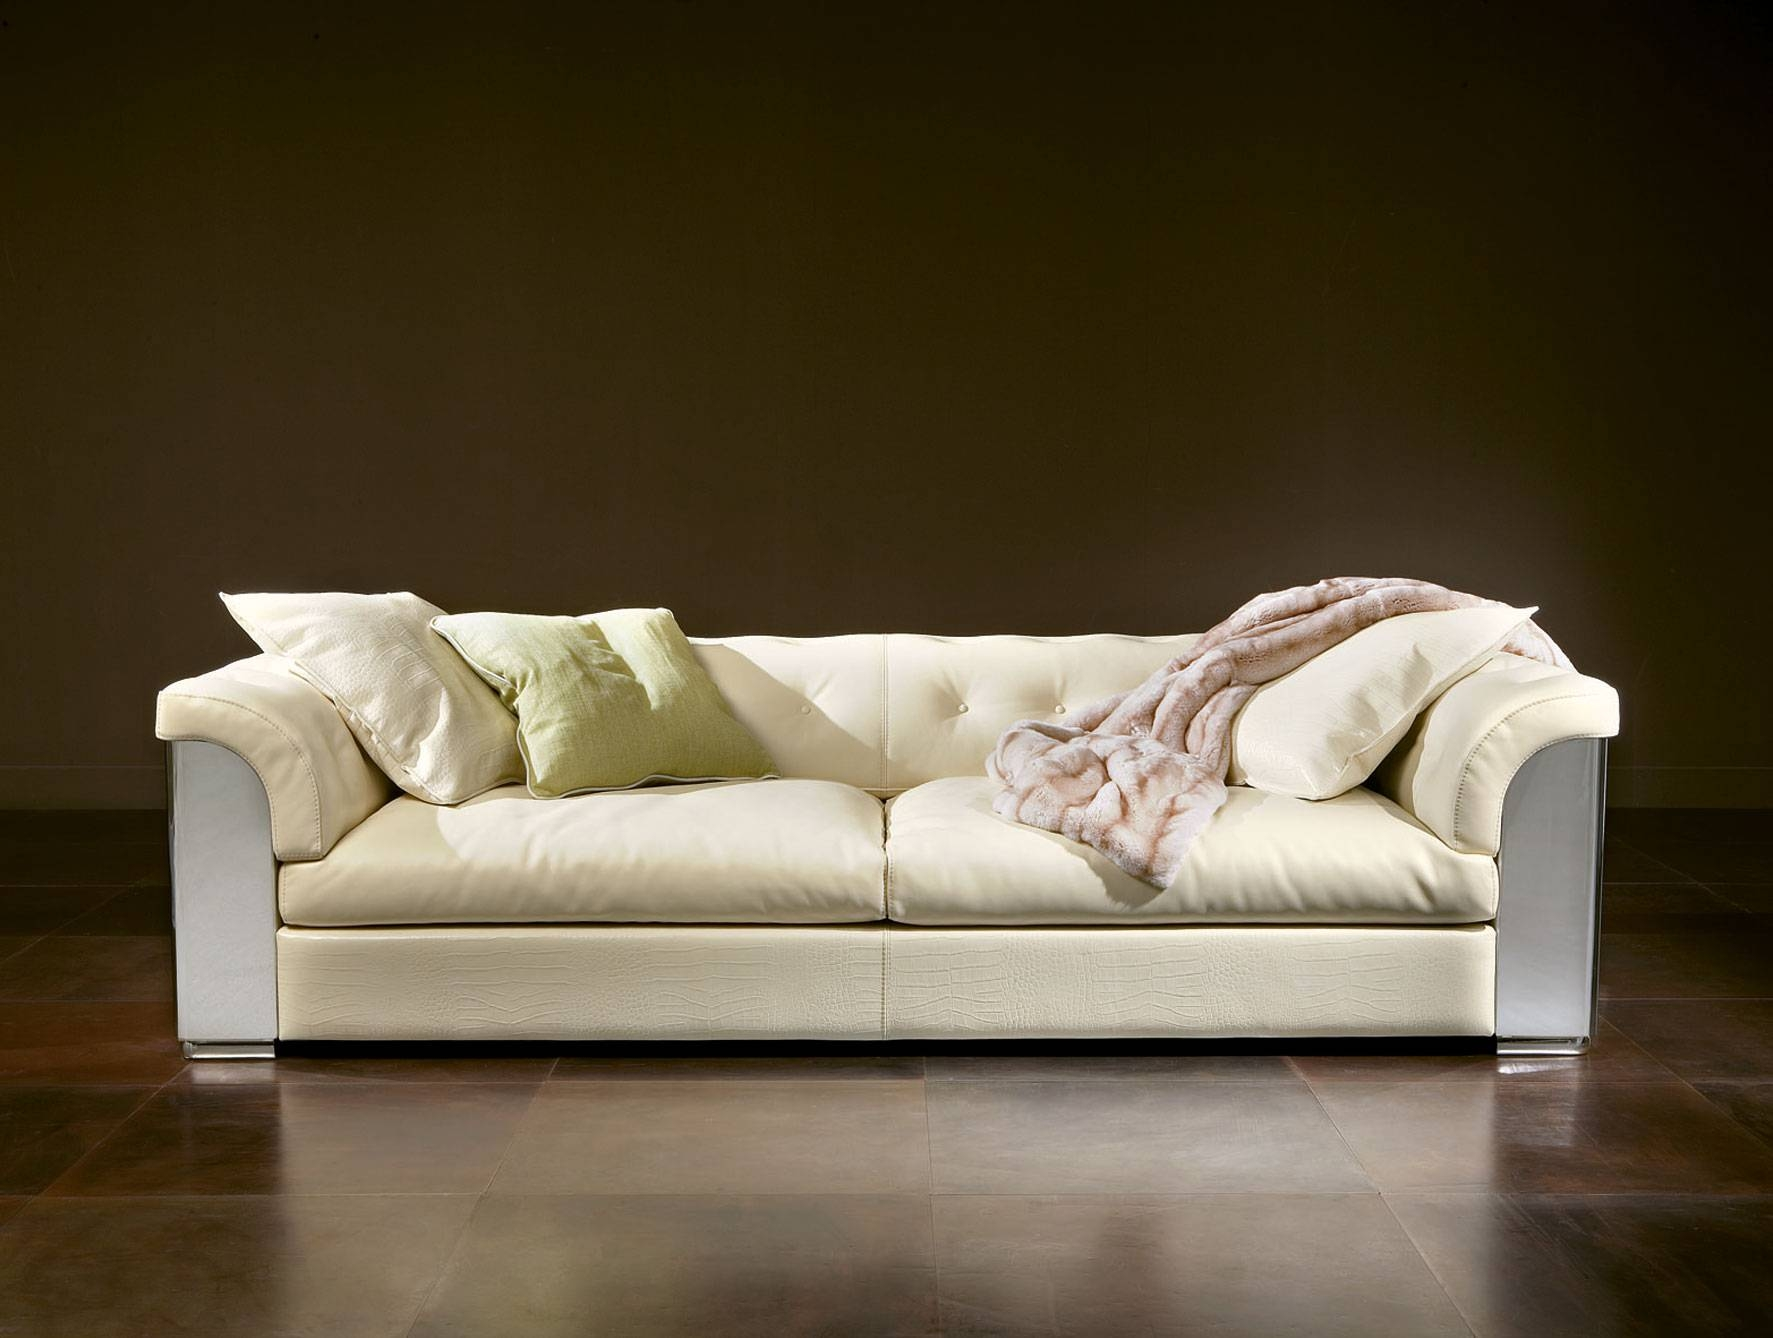 Nella Vetrina Rugiano Mytos 6066 Upholstered Sofa In White inside Sofas and Chairs (Image 11 of 30)